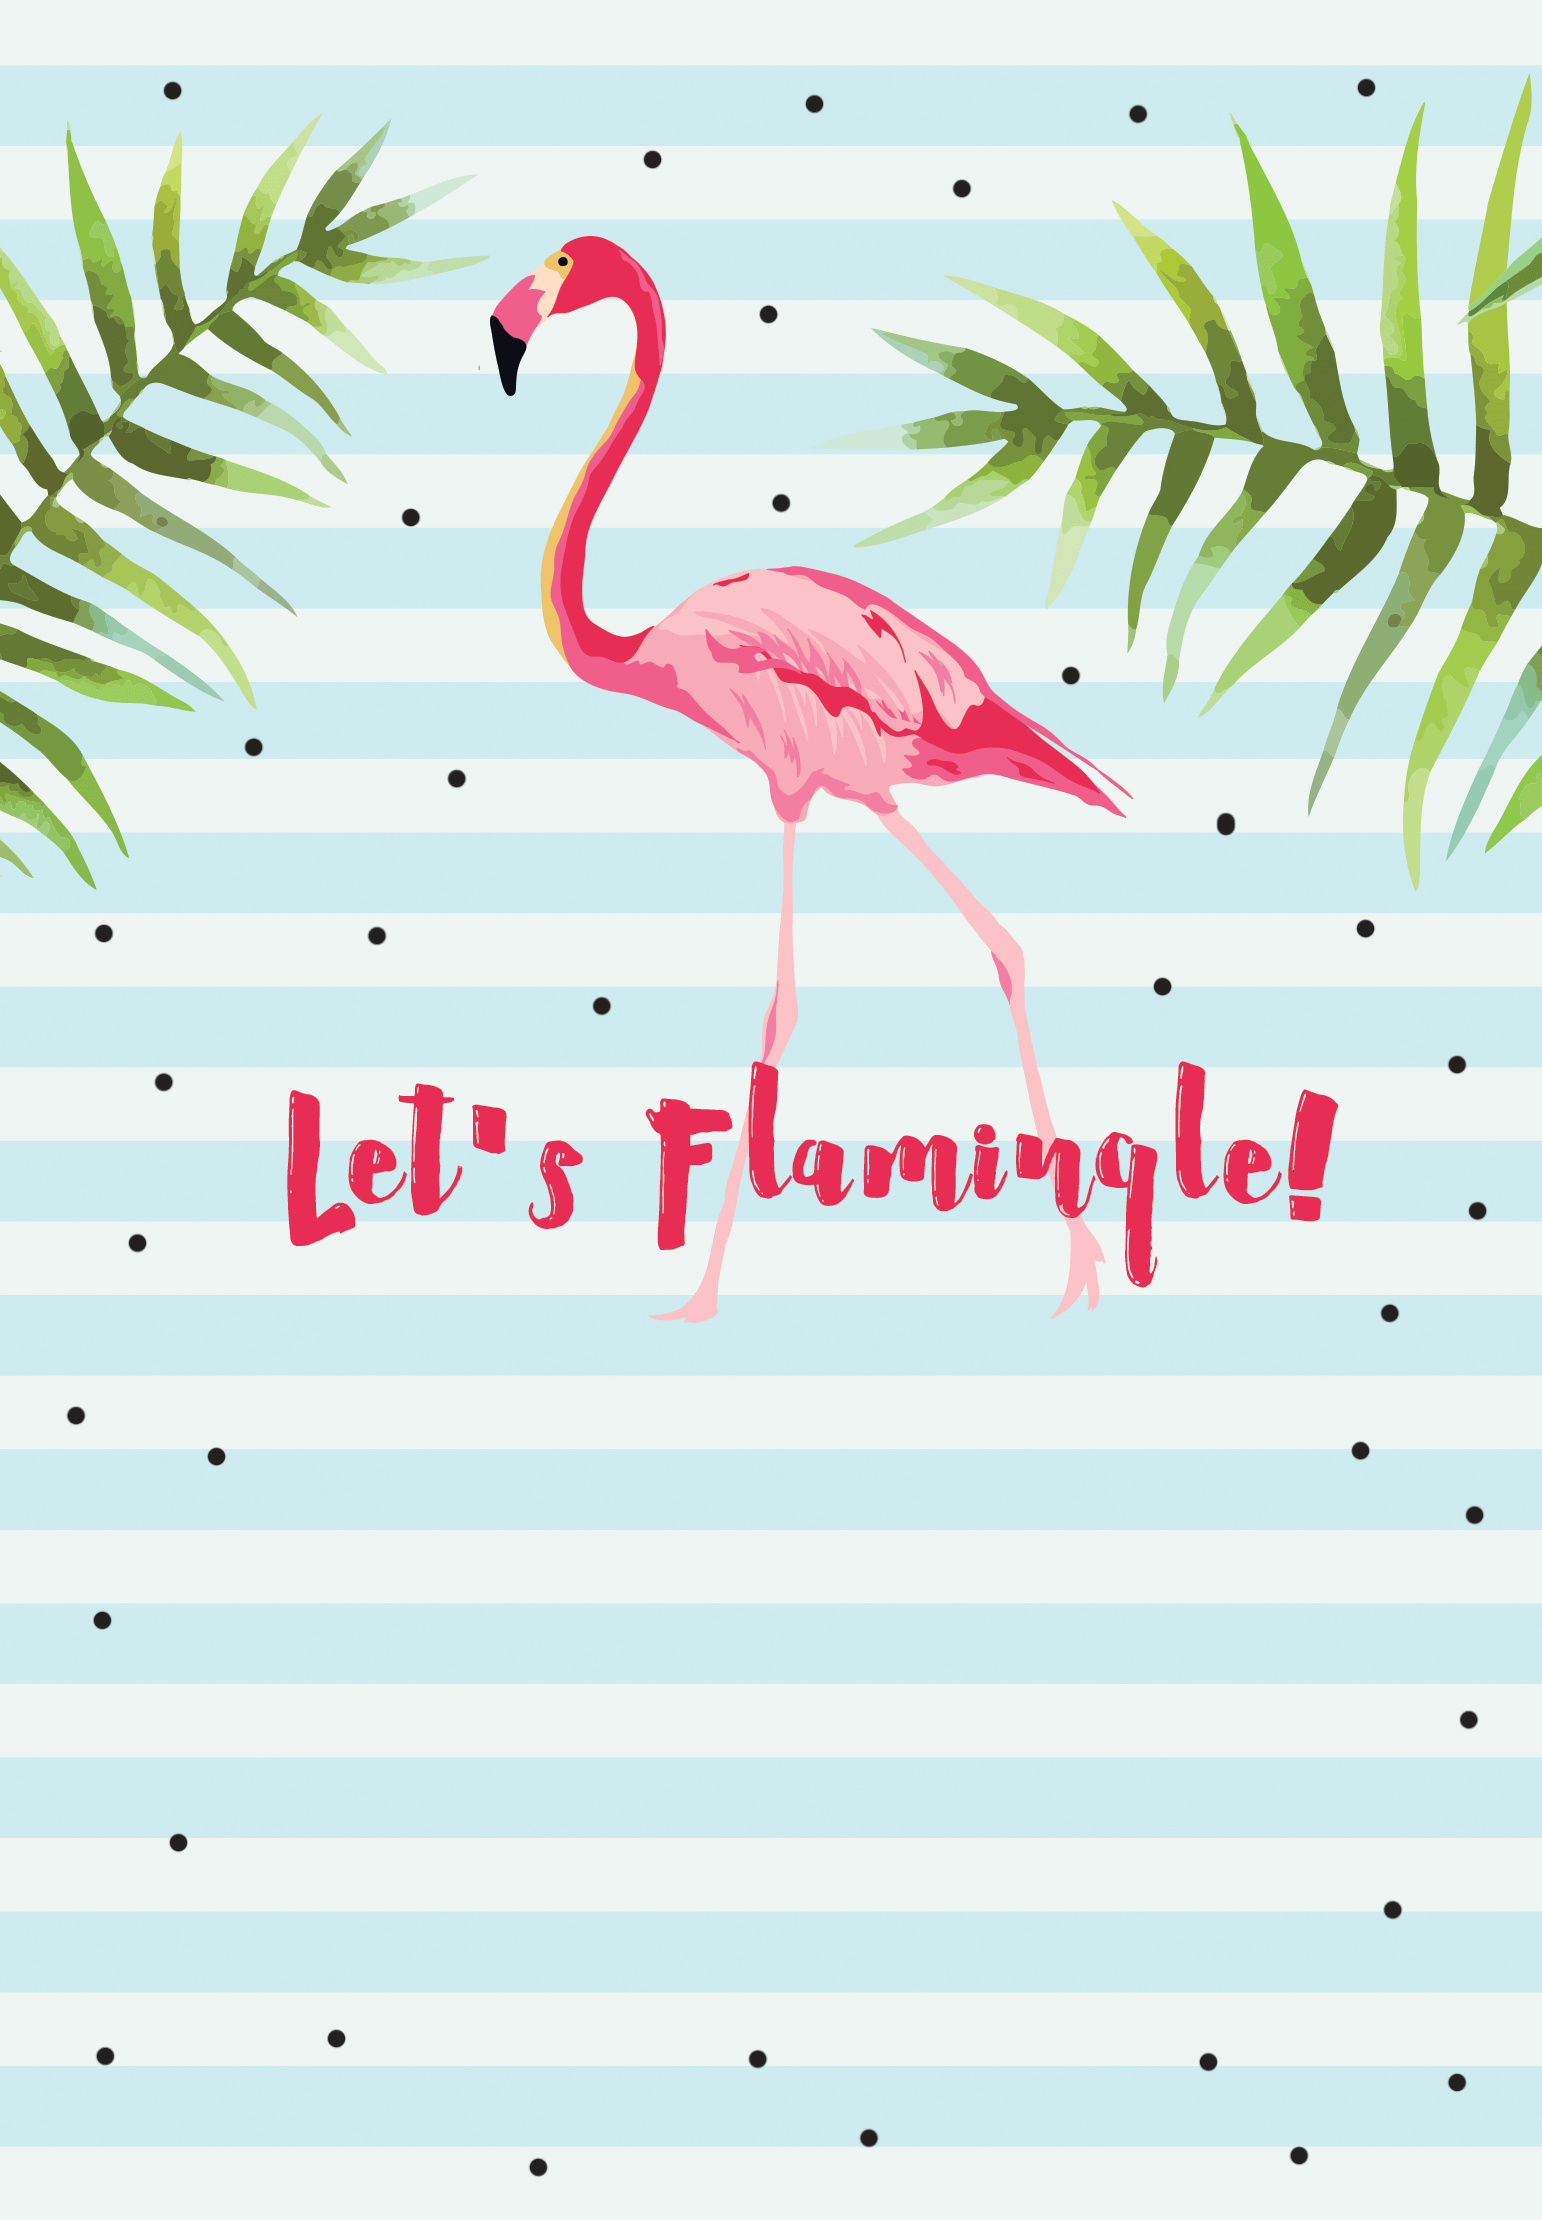 picture relating to Free Printable Bridal Shower Invitation Templates called Enables Flamingle - Totally free Printable Bridal Shower Invitation